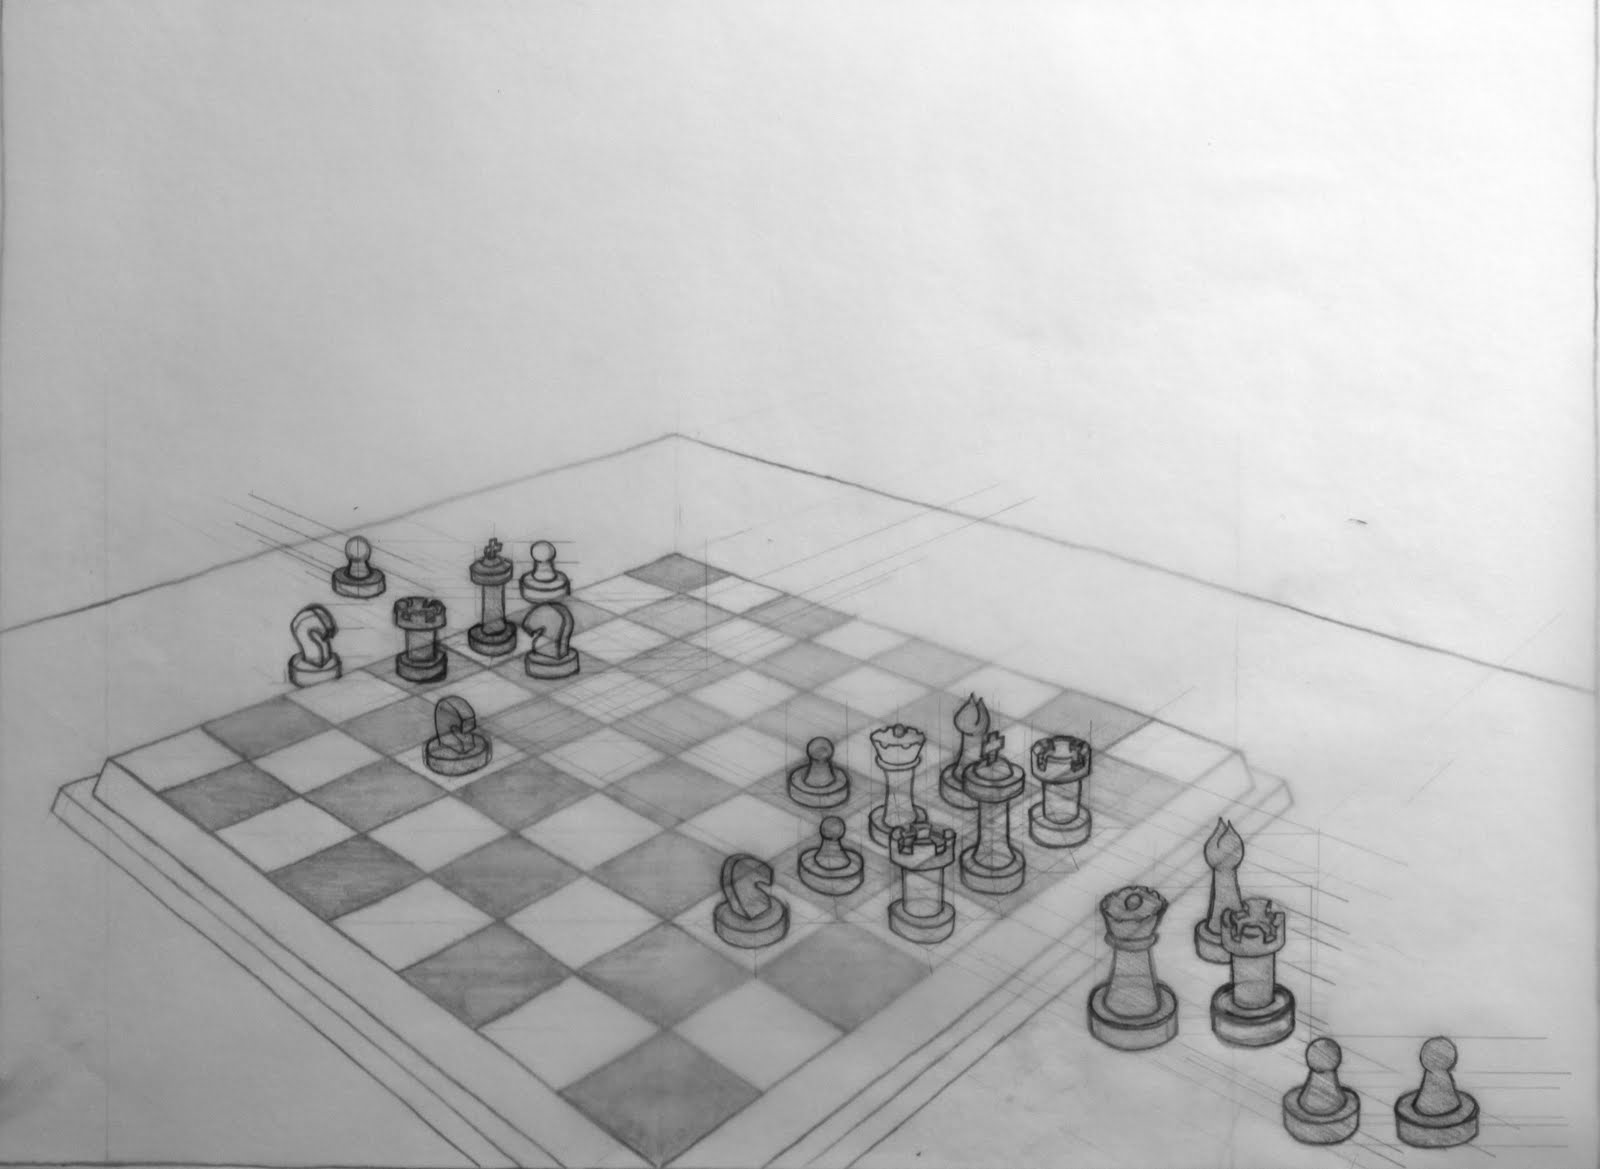 how to draw a chess board in perspective